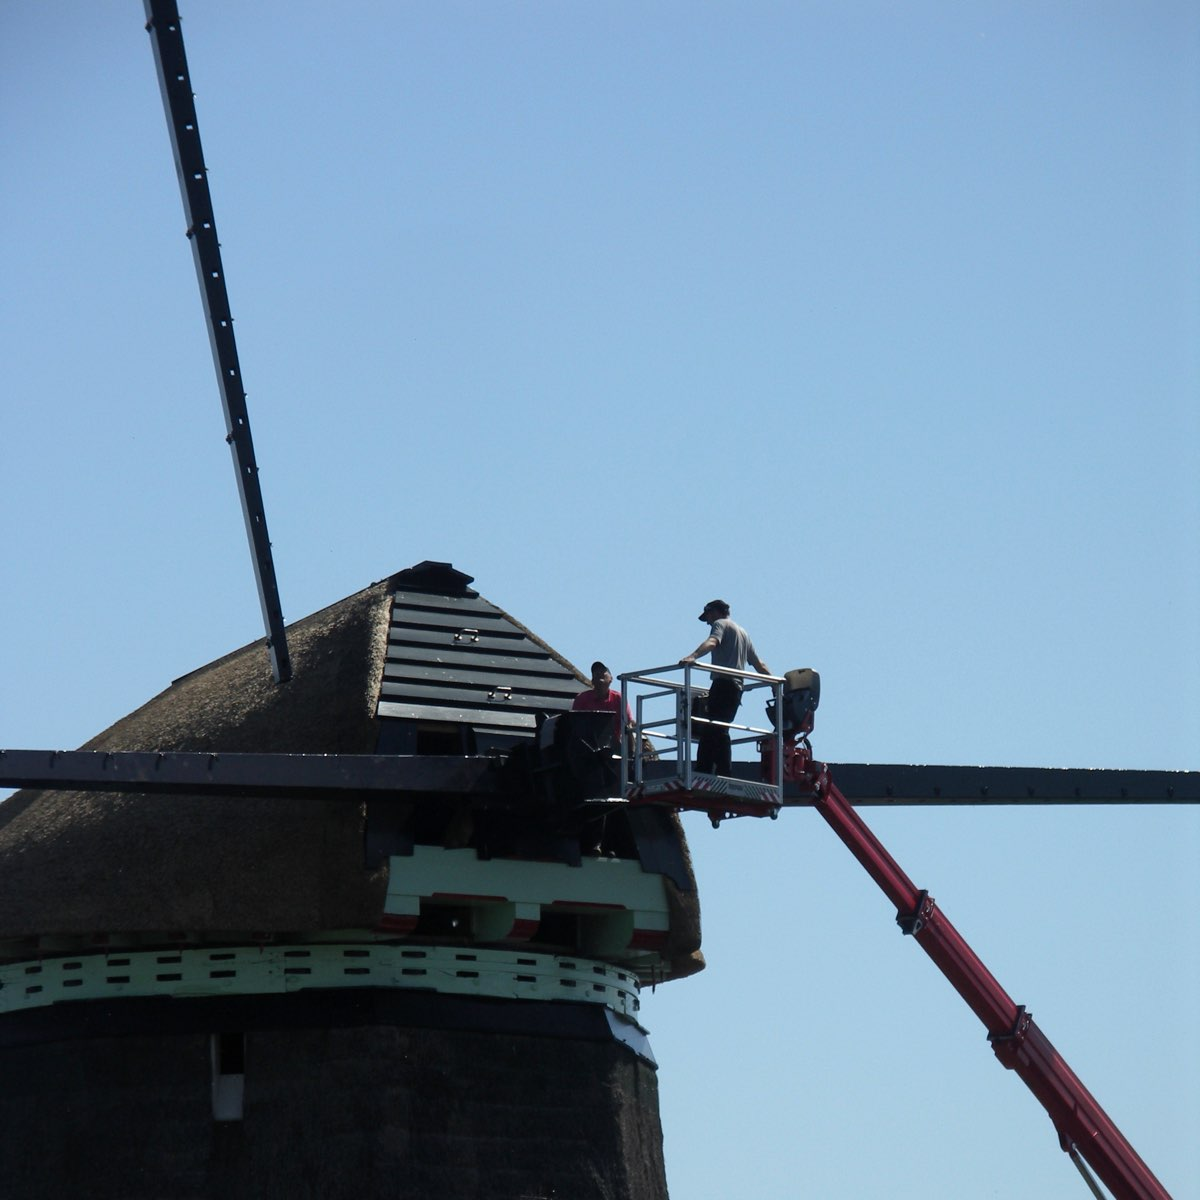 twiskemolen second blade dropping into position